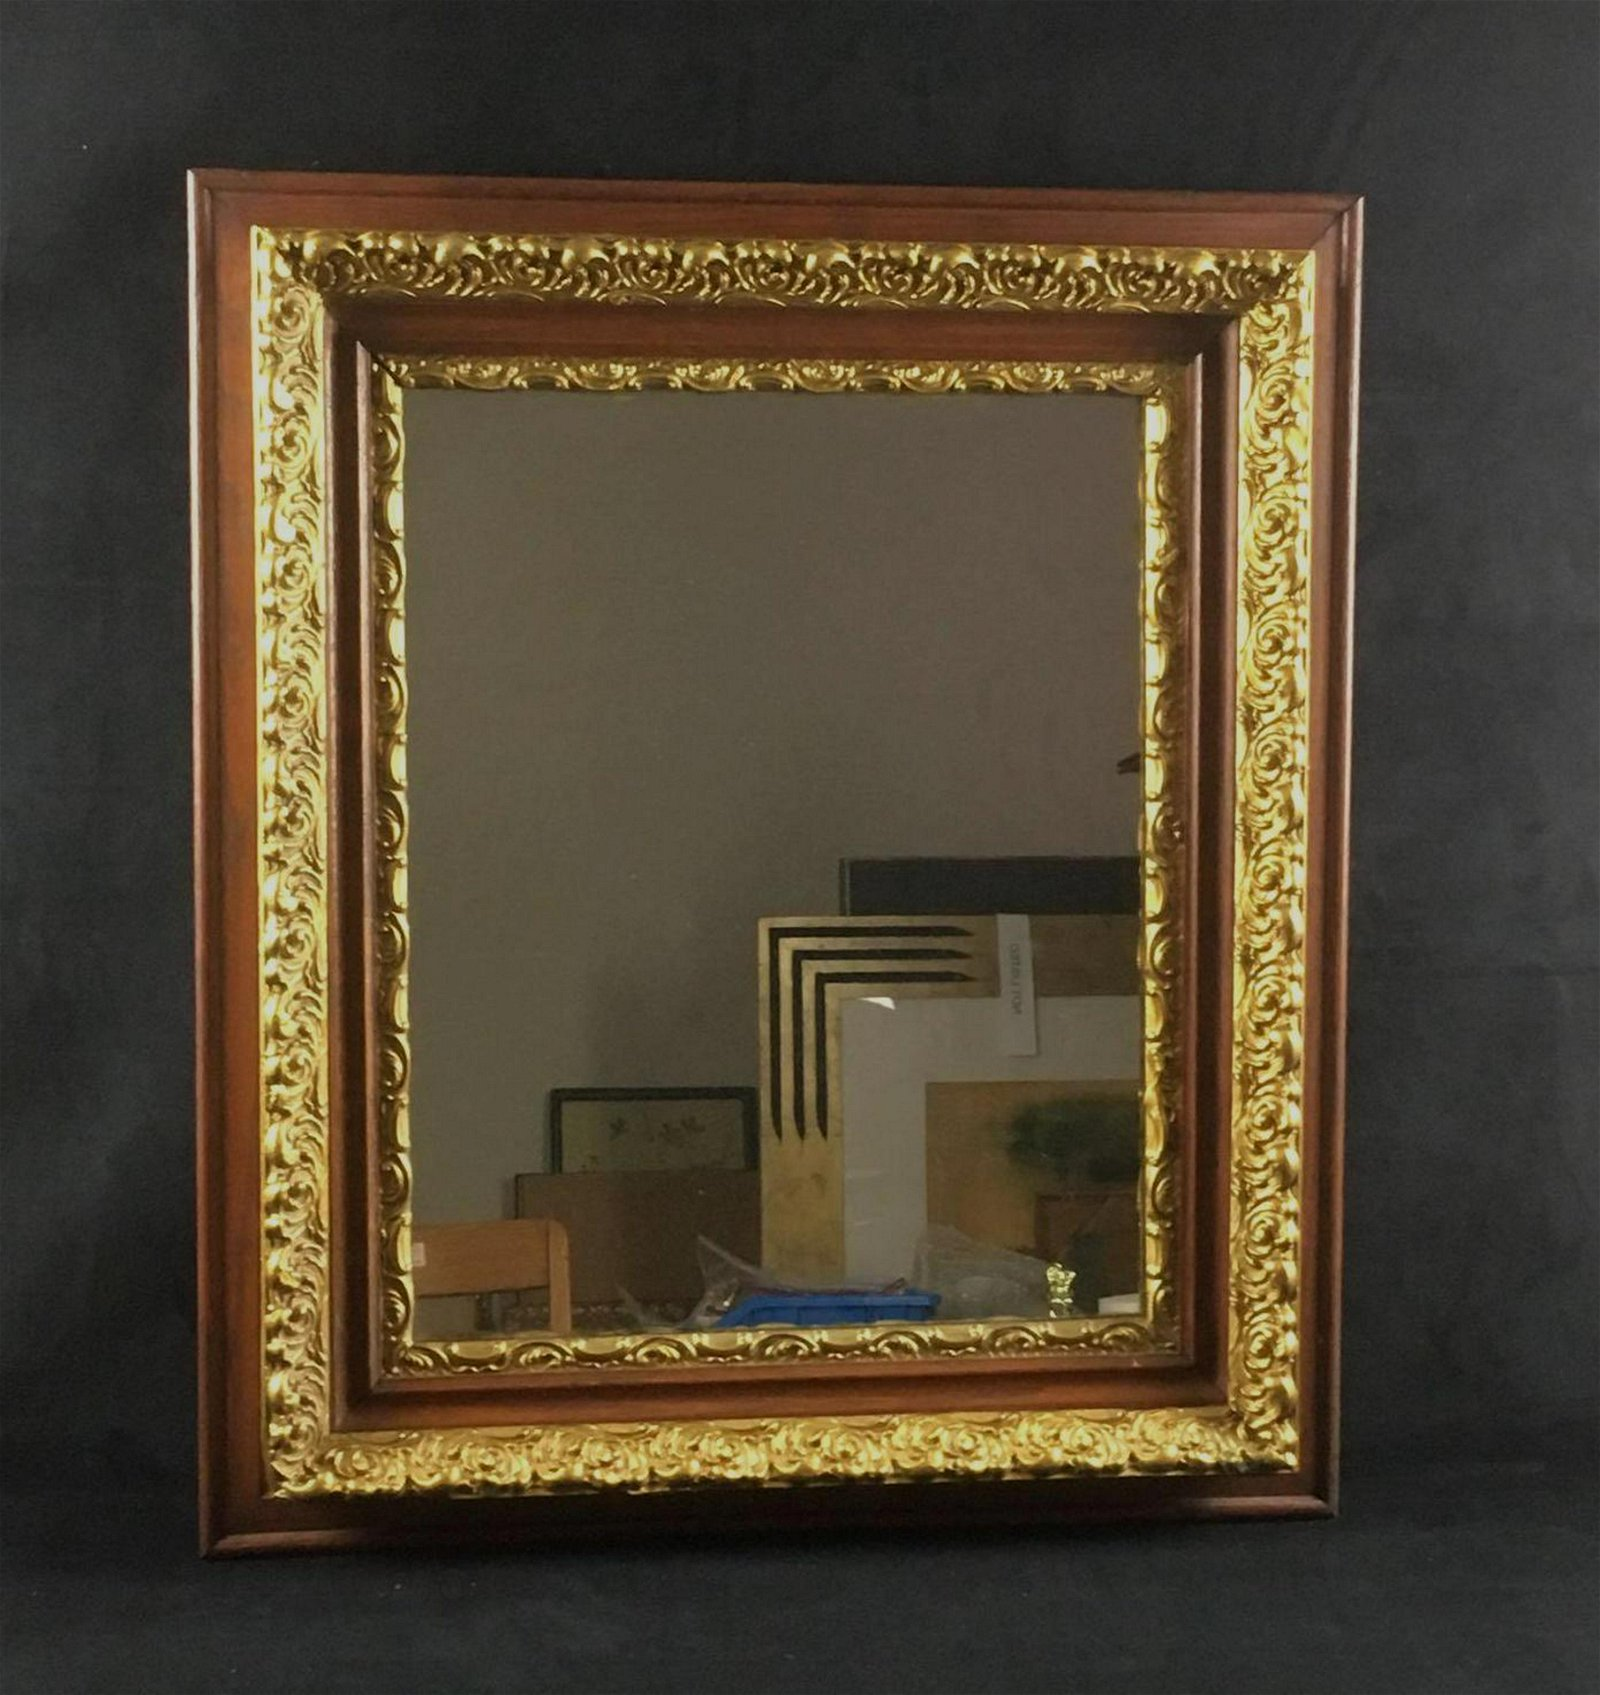 Wall Mirror Mounted in Vintage Carved Built up Wood